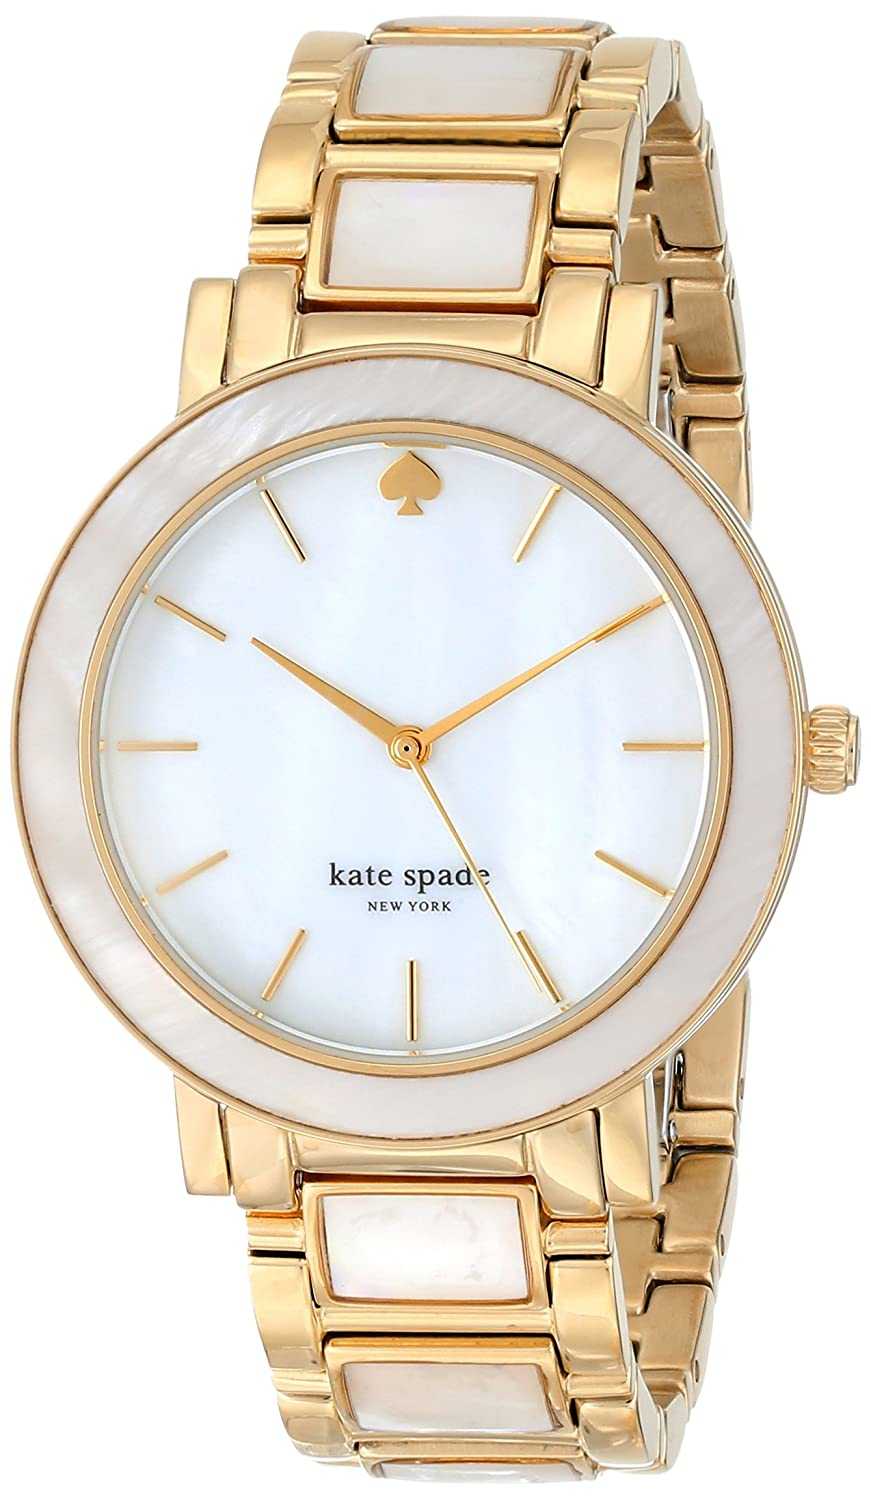 kate spade new york Women's 1YRU0394 Gramercy Gold-Tone and Mother-of-Pearl Bracelet Watch туфли kate spade туфли лодочки